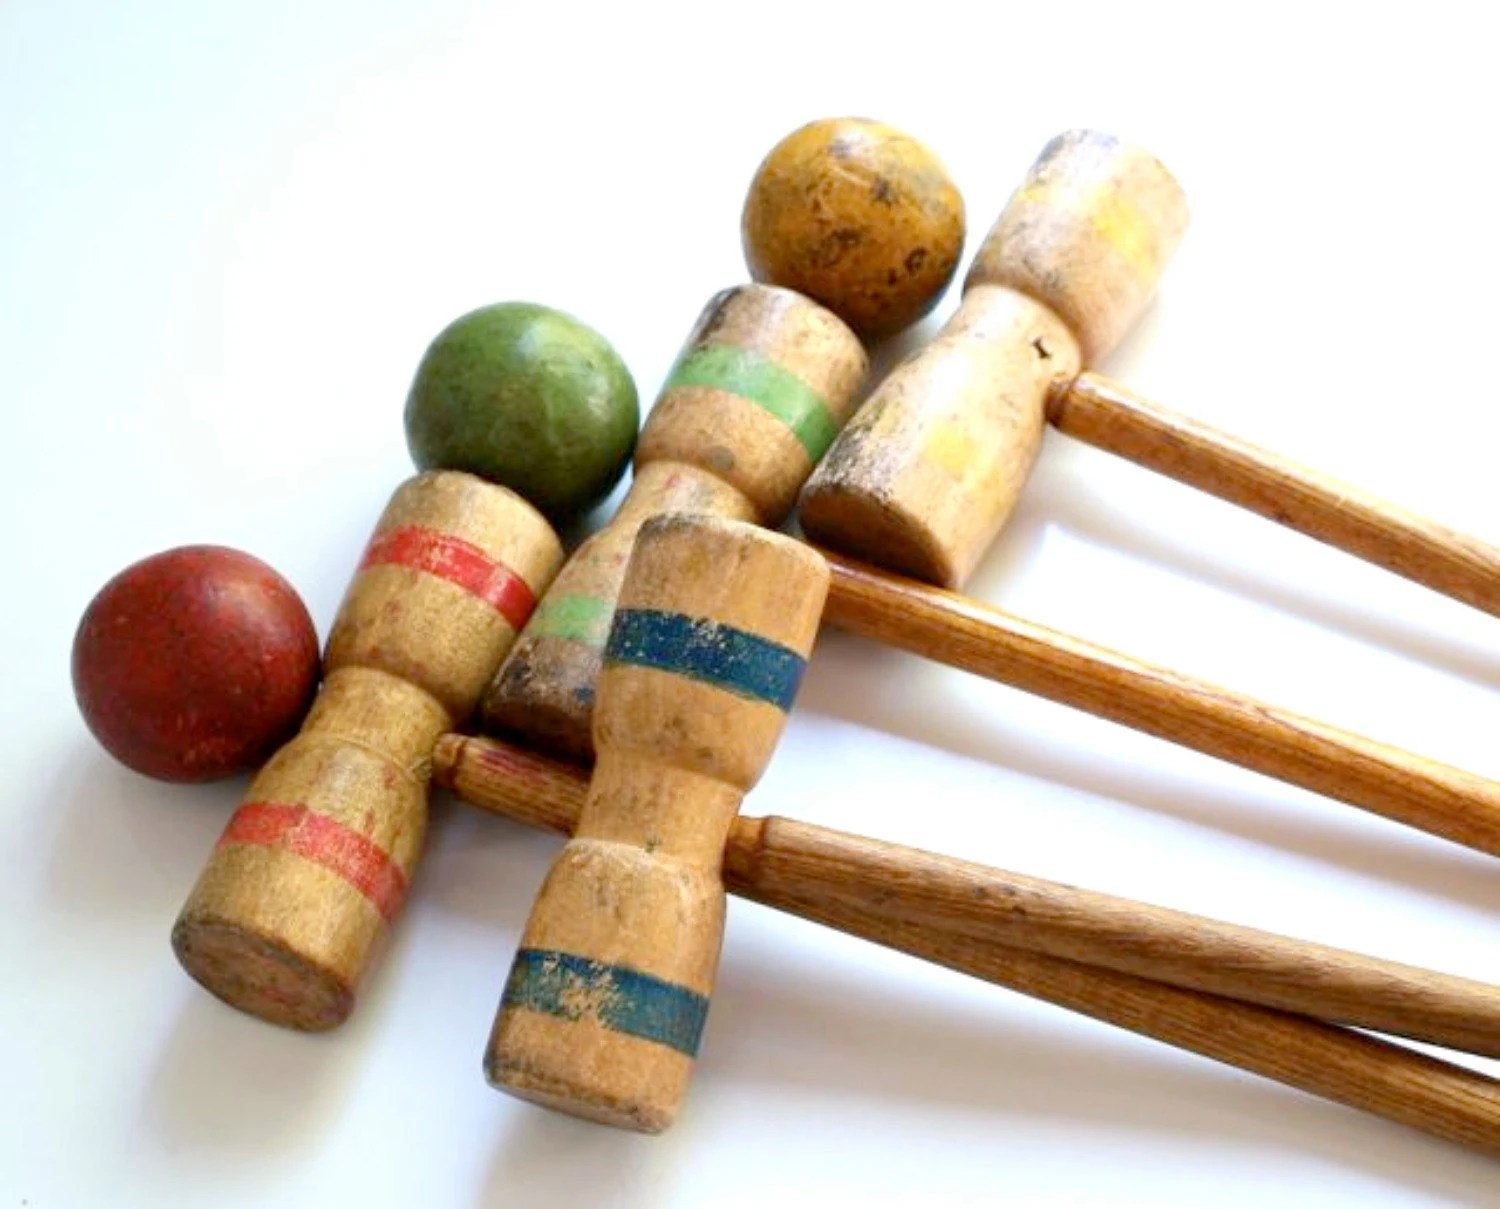 RESERVED FOR MAXI Antique Wood Croquet Set By 5gardenias